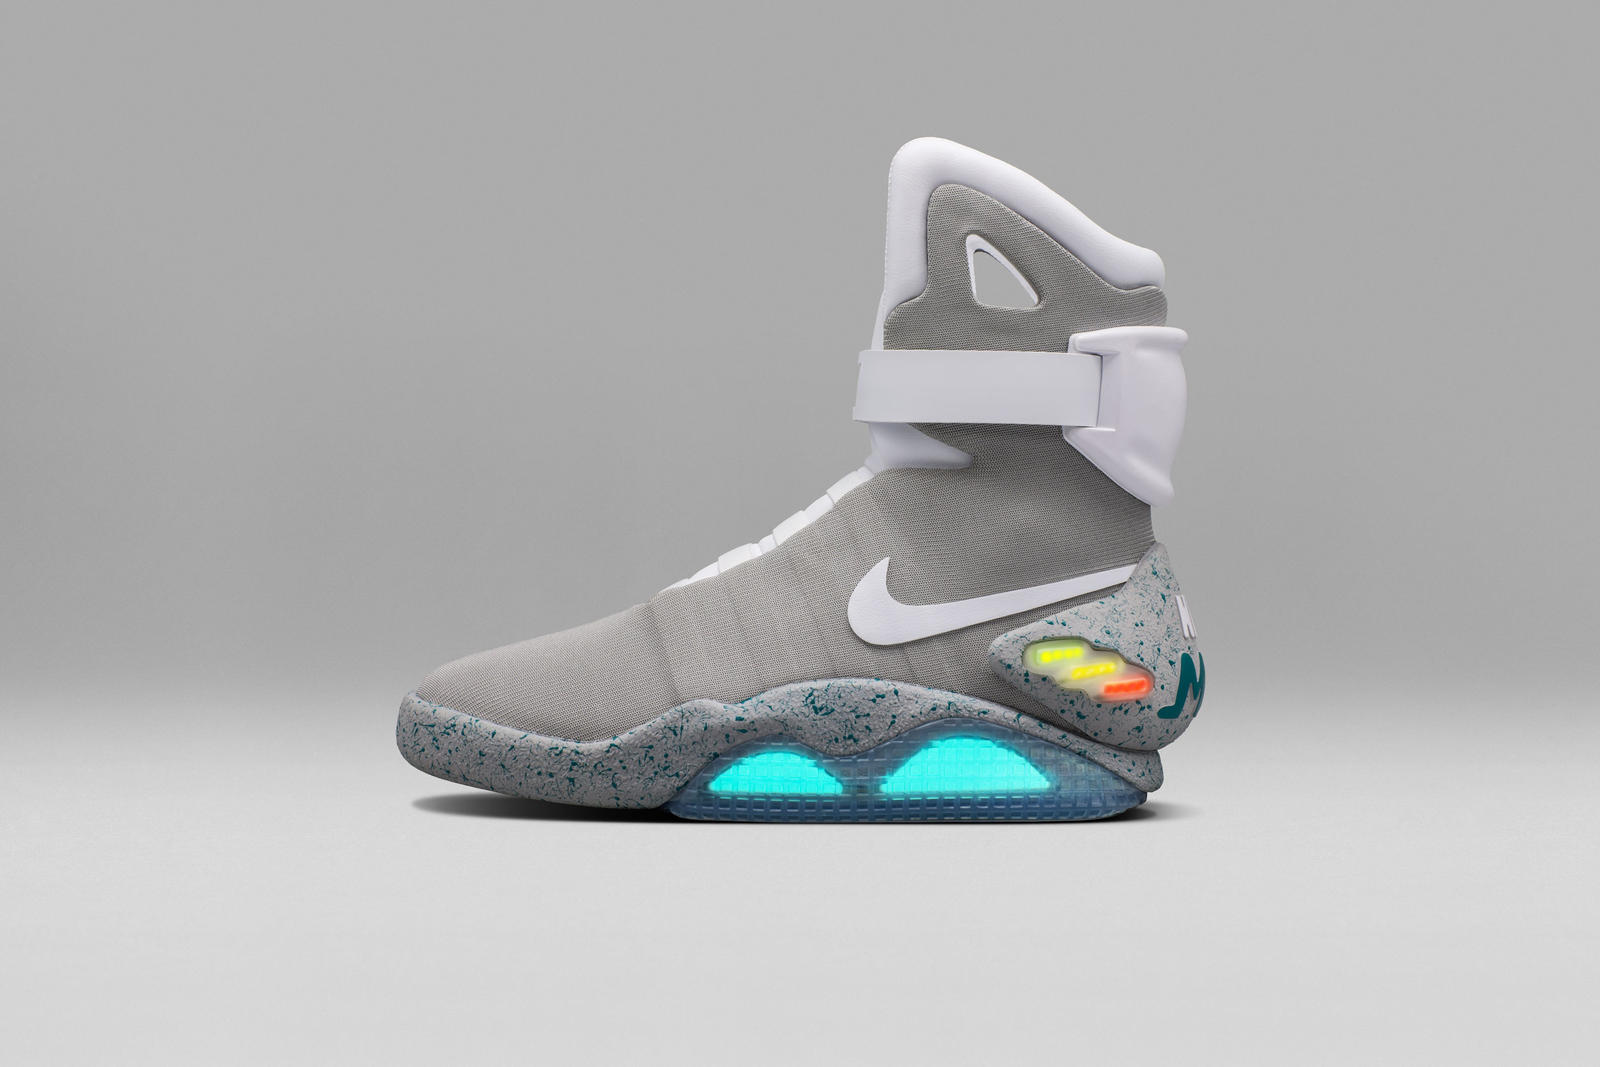 nike-mag-2016-official-02_native_1600-1